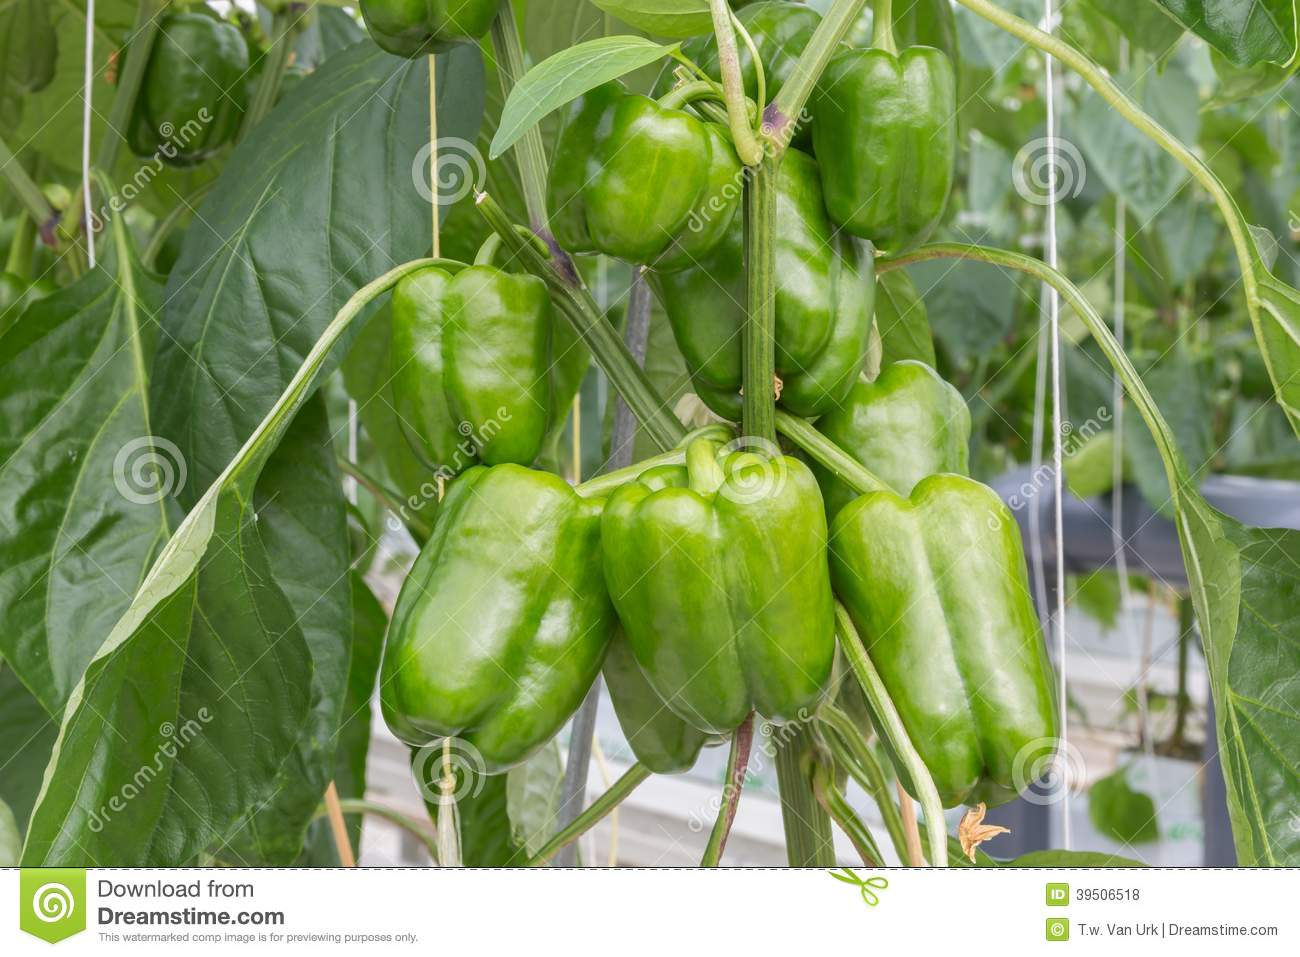 Cultivation of peppers in a Dutch greenhouse